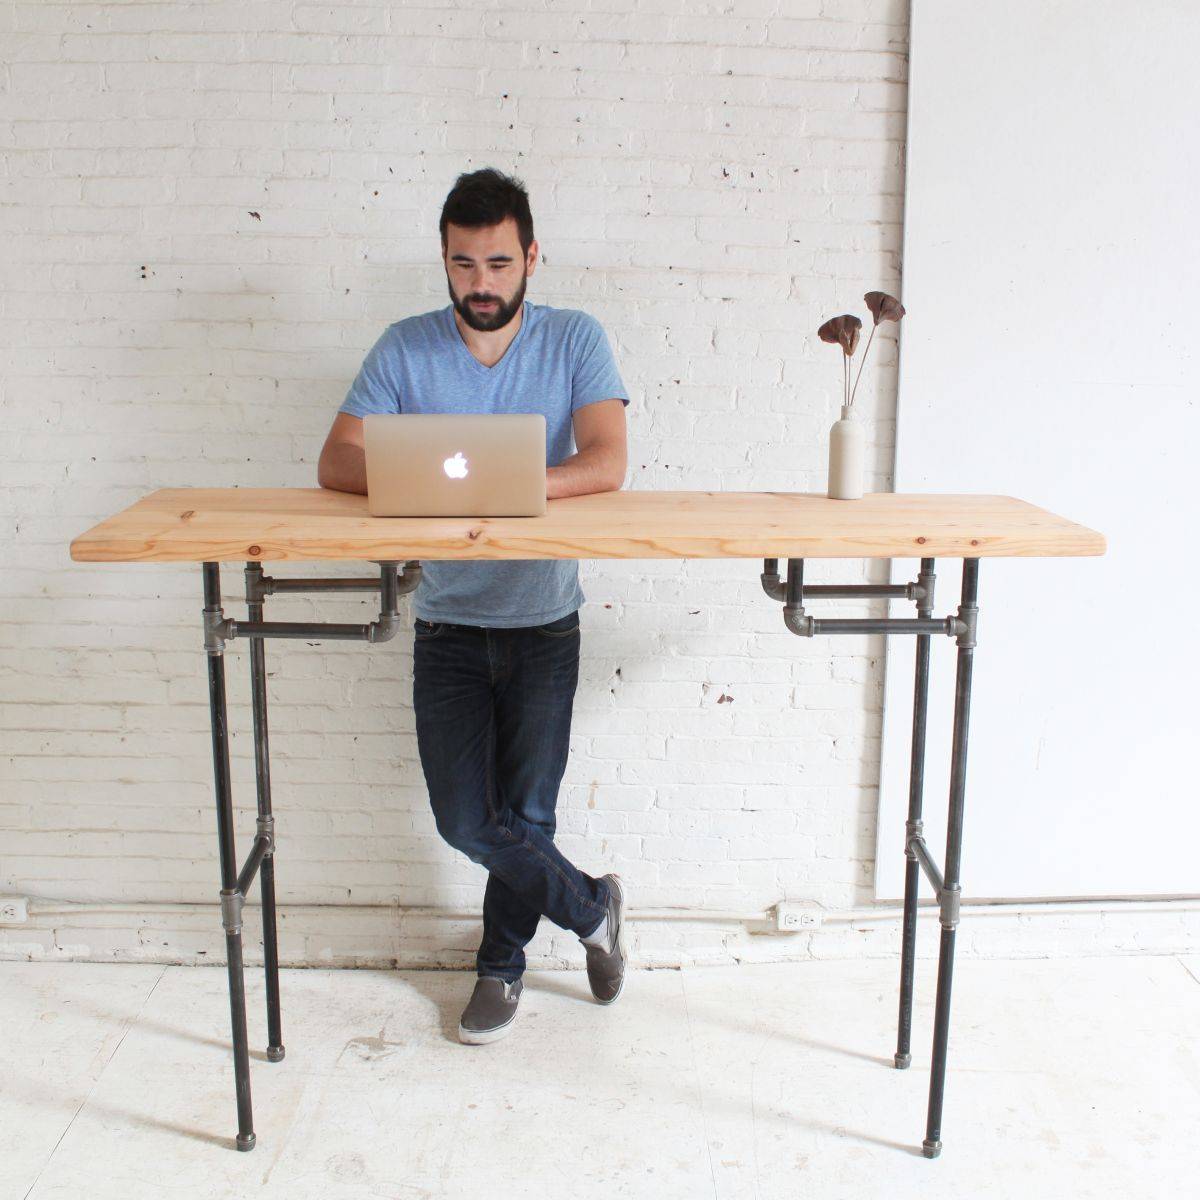 Desk kickstand furniture - Diy Plumbers Pipe Standing Desk